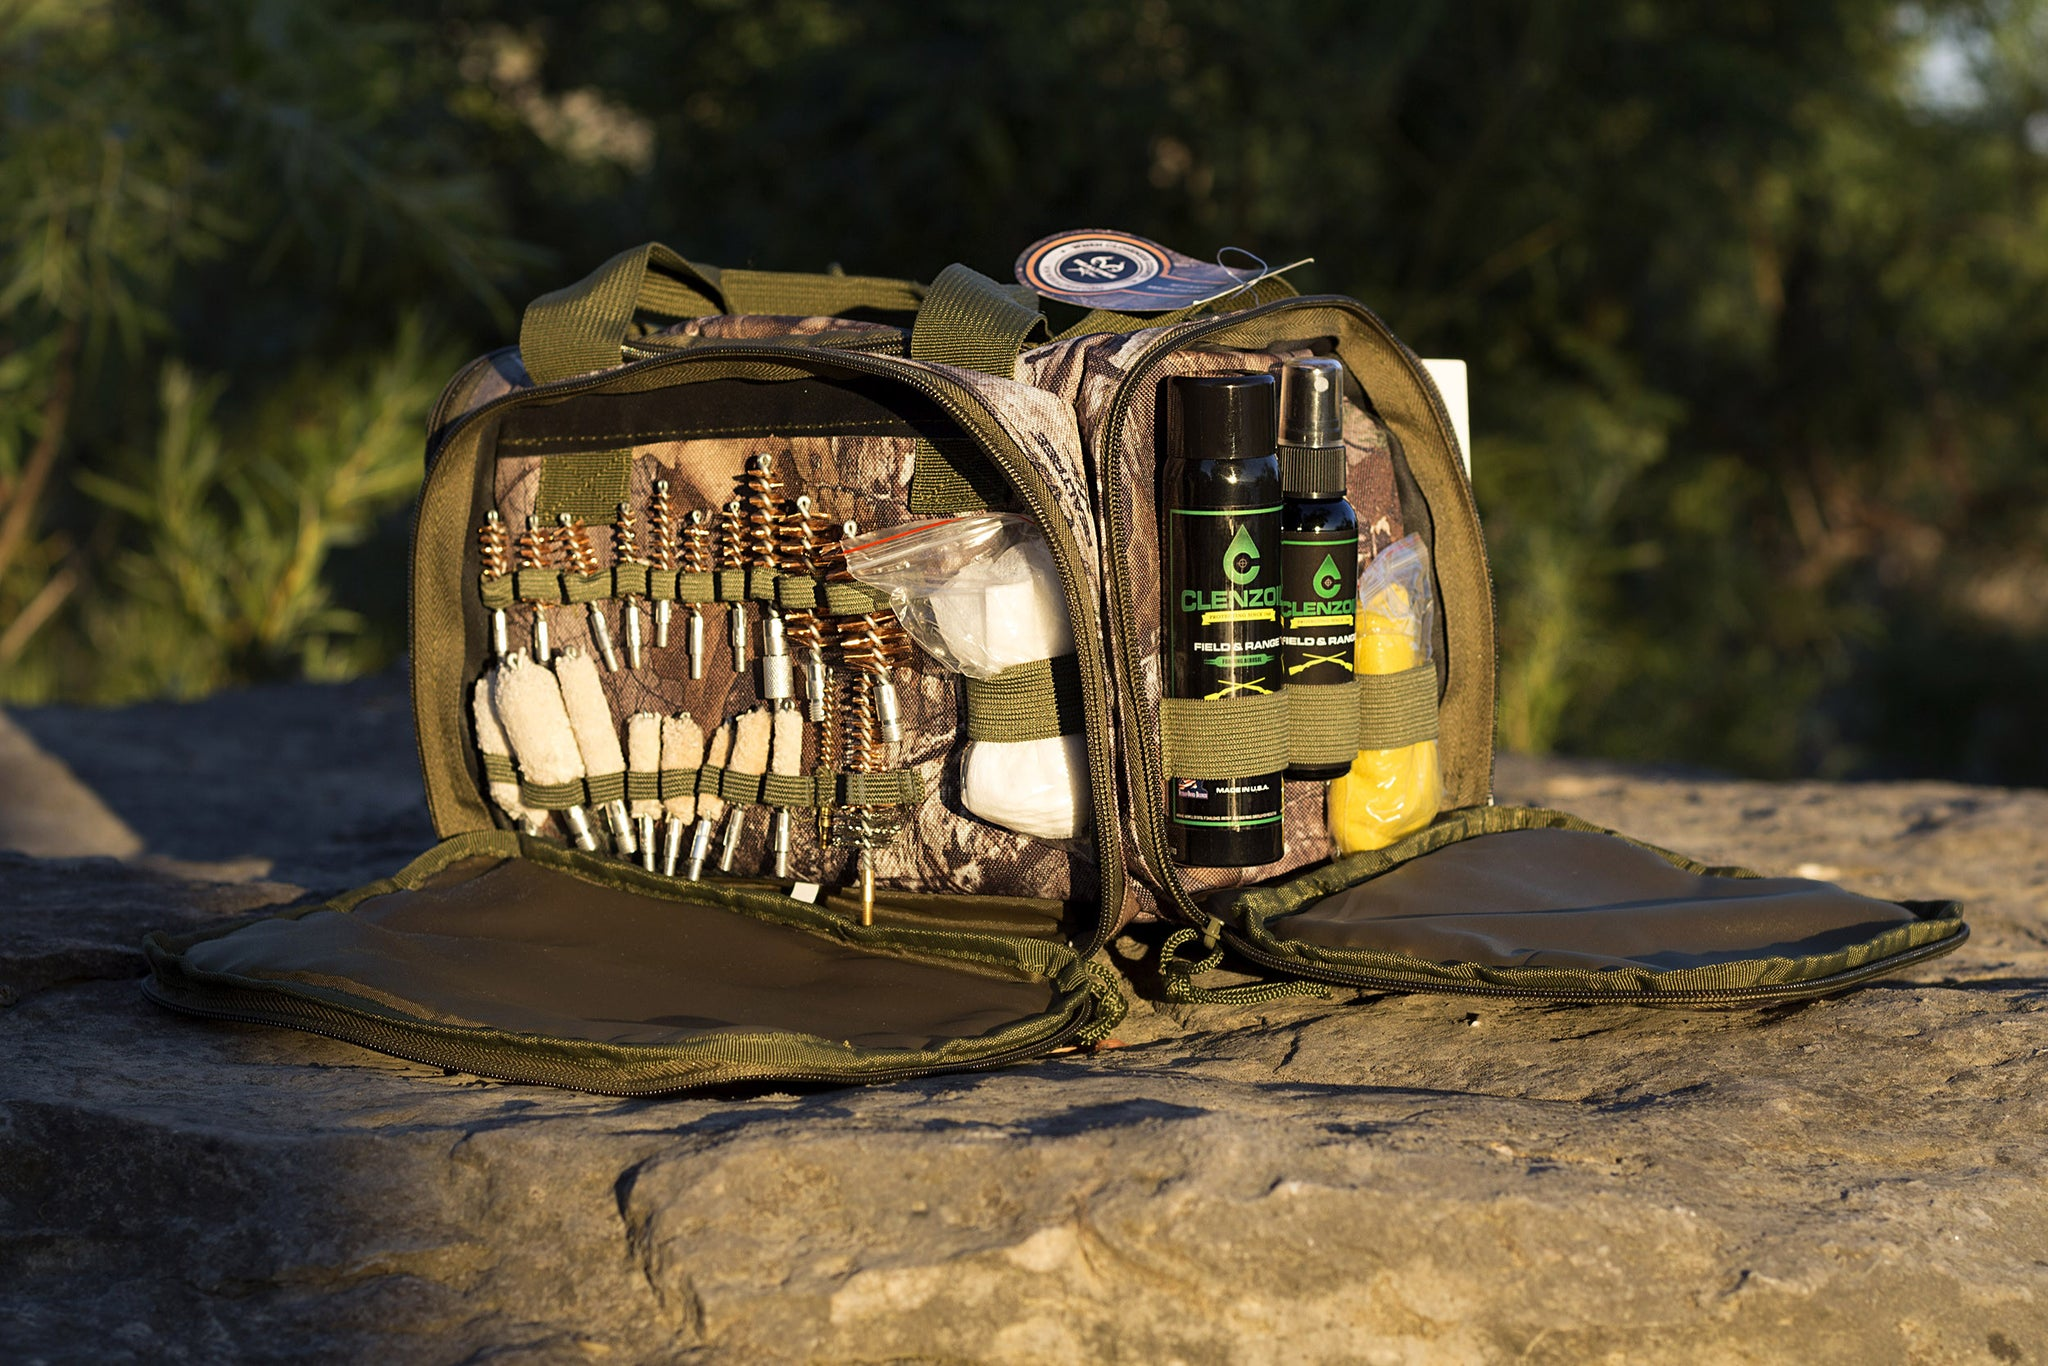 August Giveaway: Clenzoil RealTree Range Bag